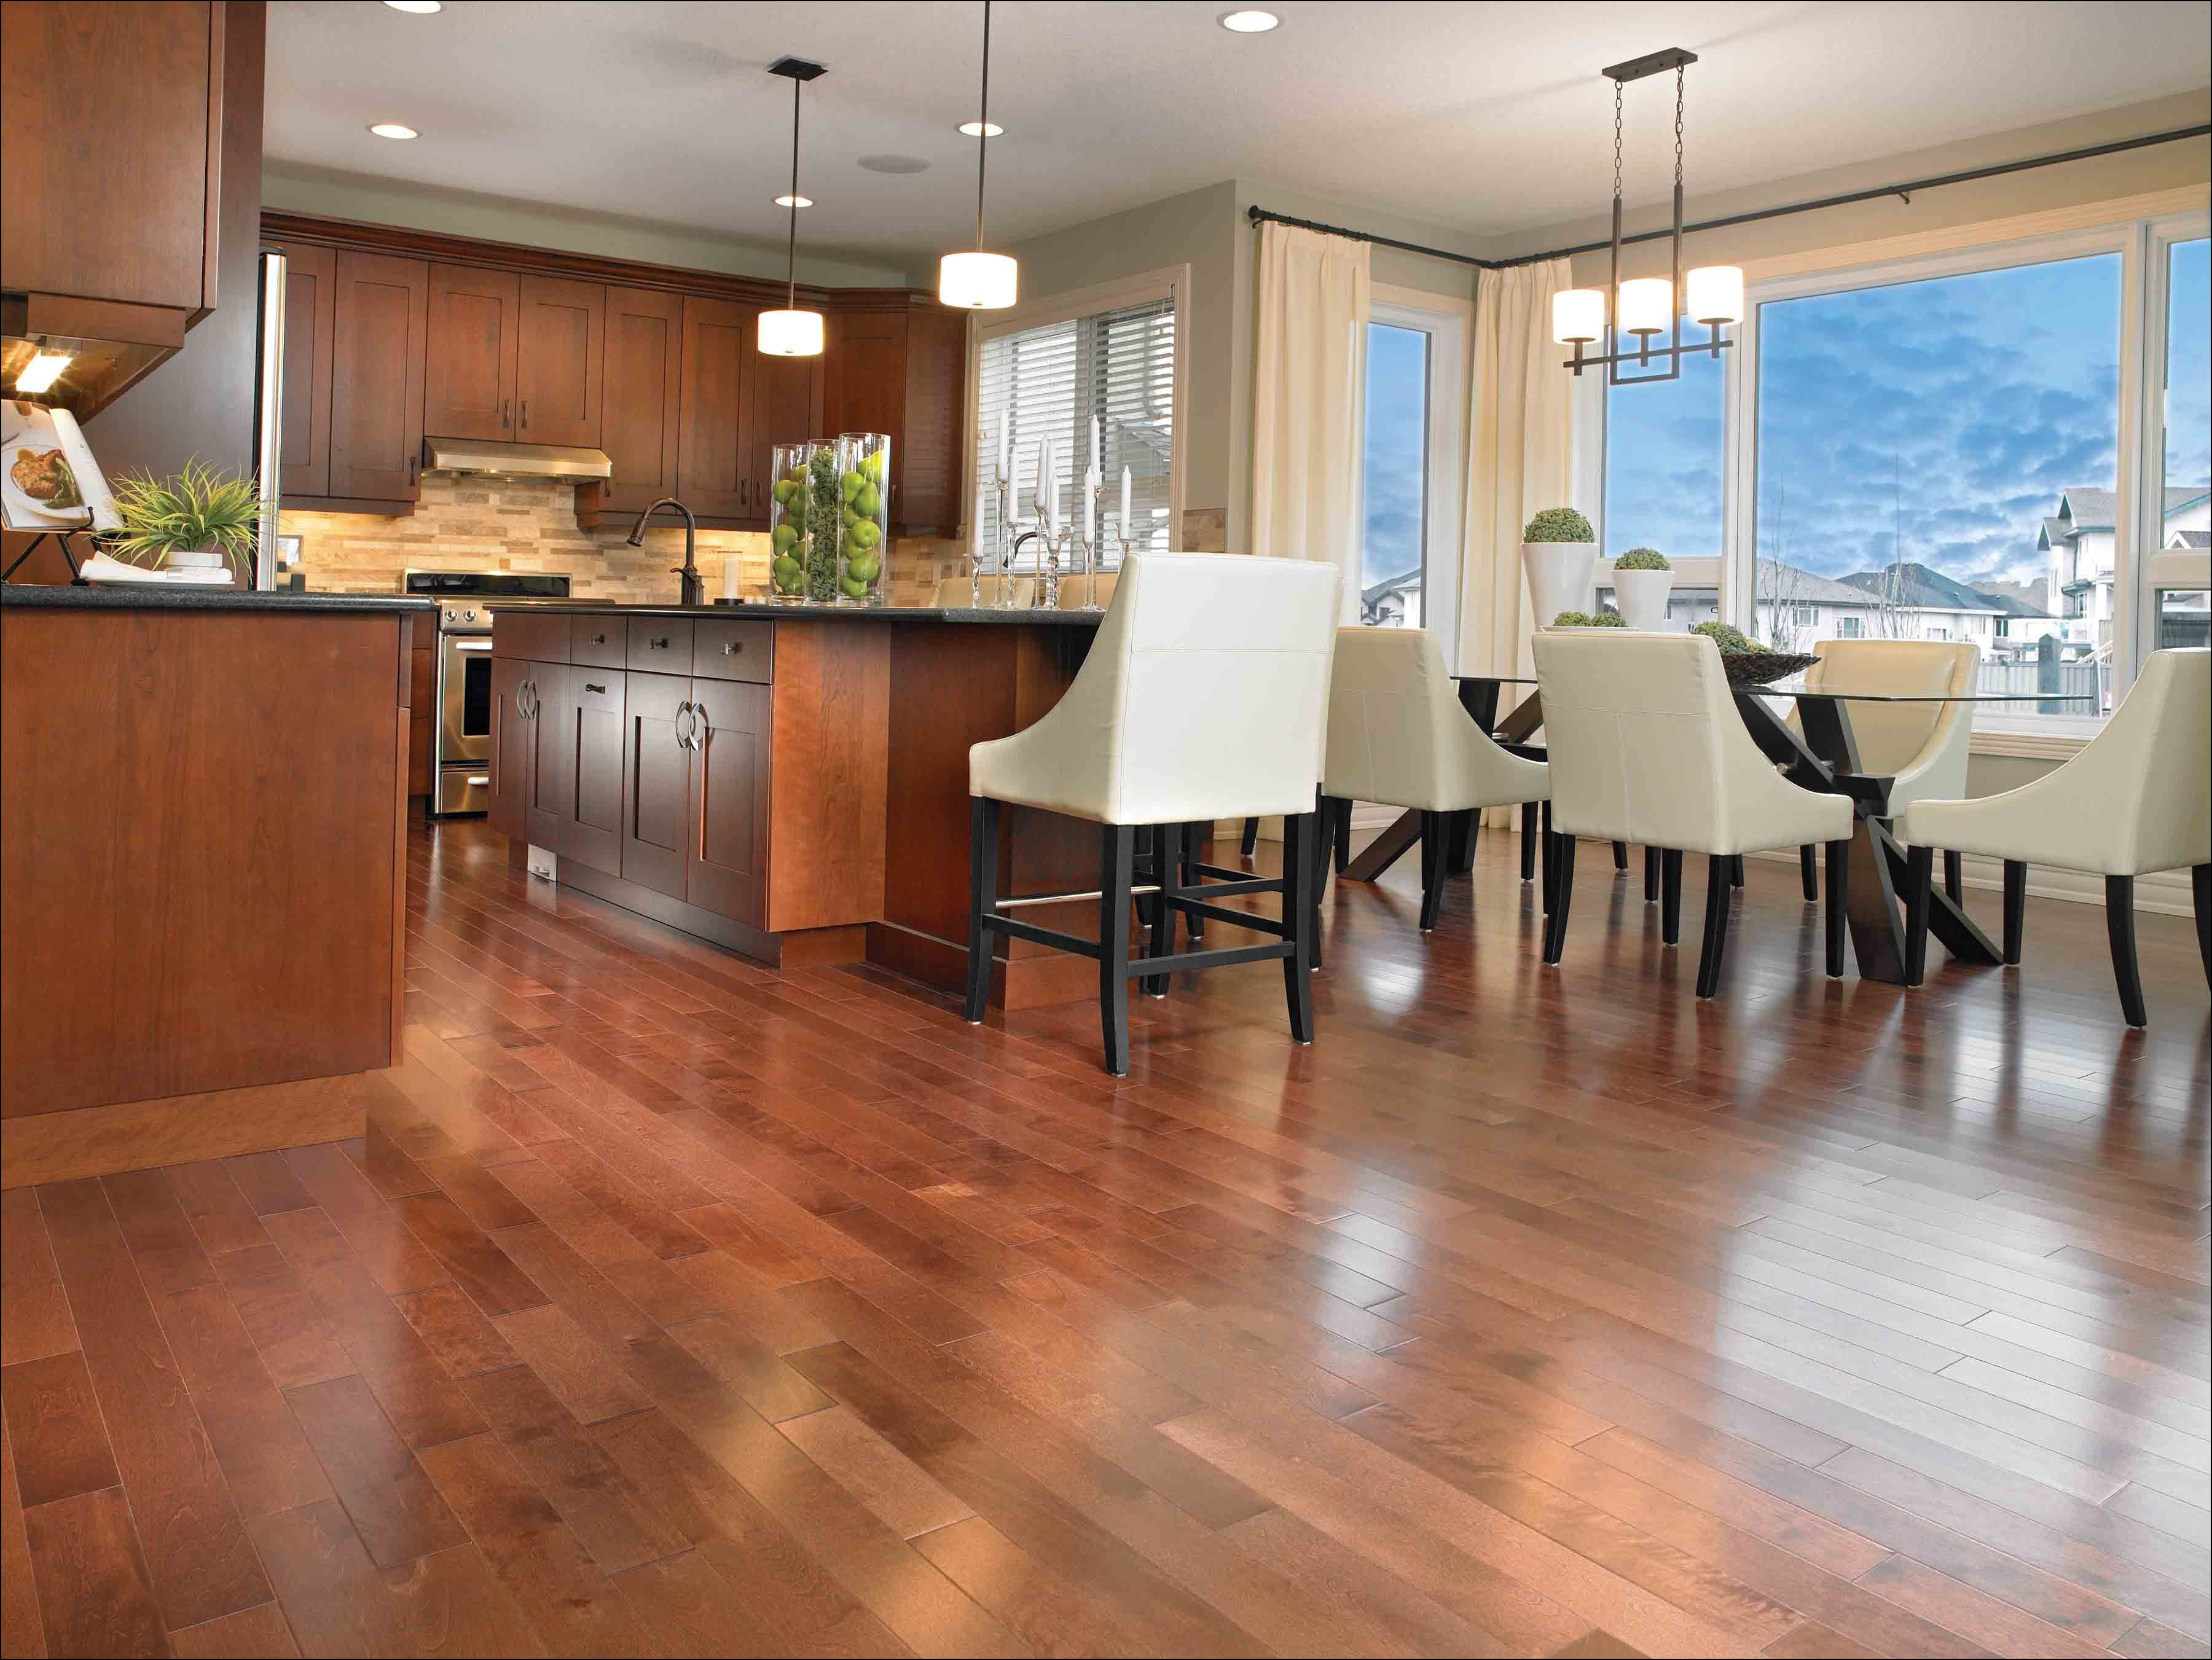 10 Elegant Bruce Oak Hardwood Flooring Reviews 2021 free download bruce oak hardwood flooring reviews of hardwood flooring suppliers france flooring ideas intended for hardwood flooring installation san diego images 54 best exotic flooring images on pinter